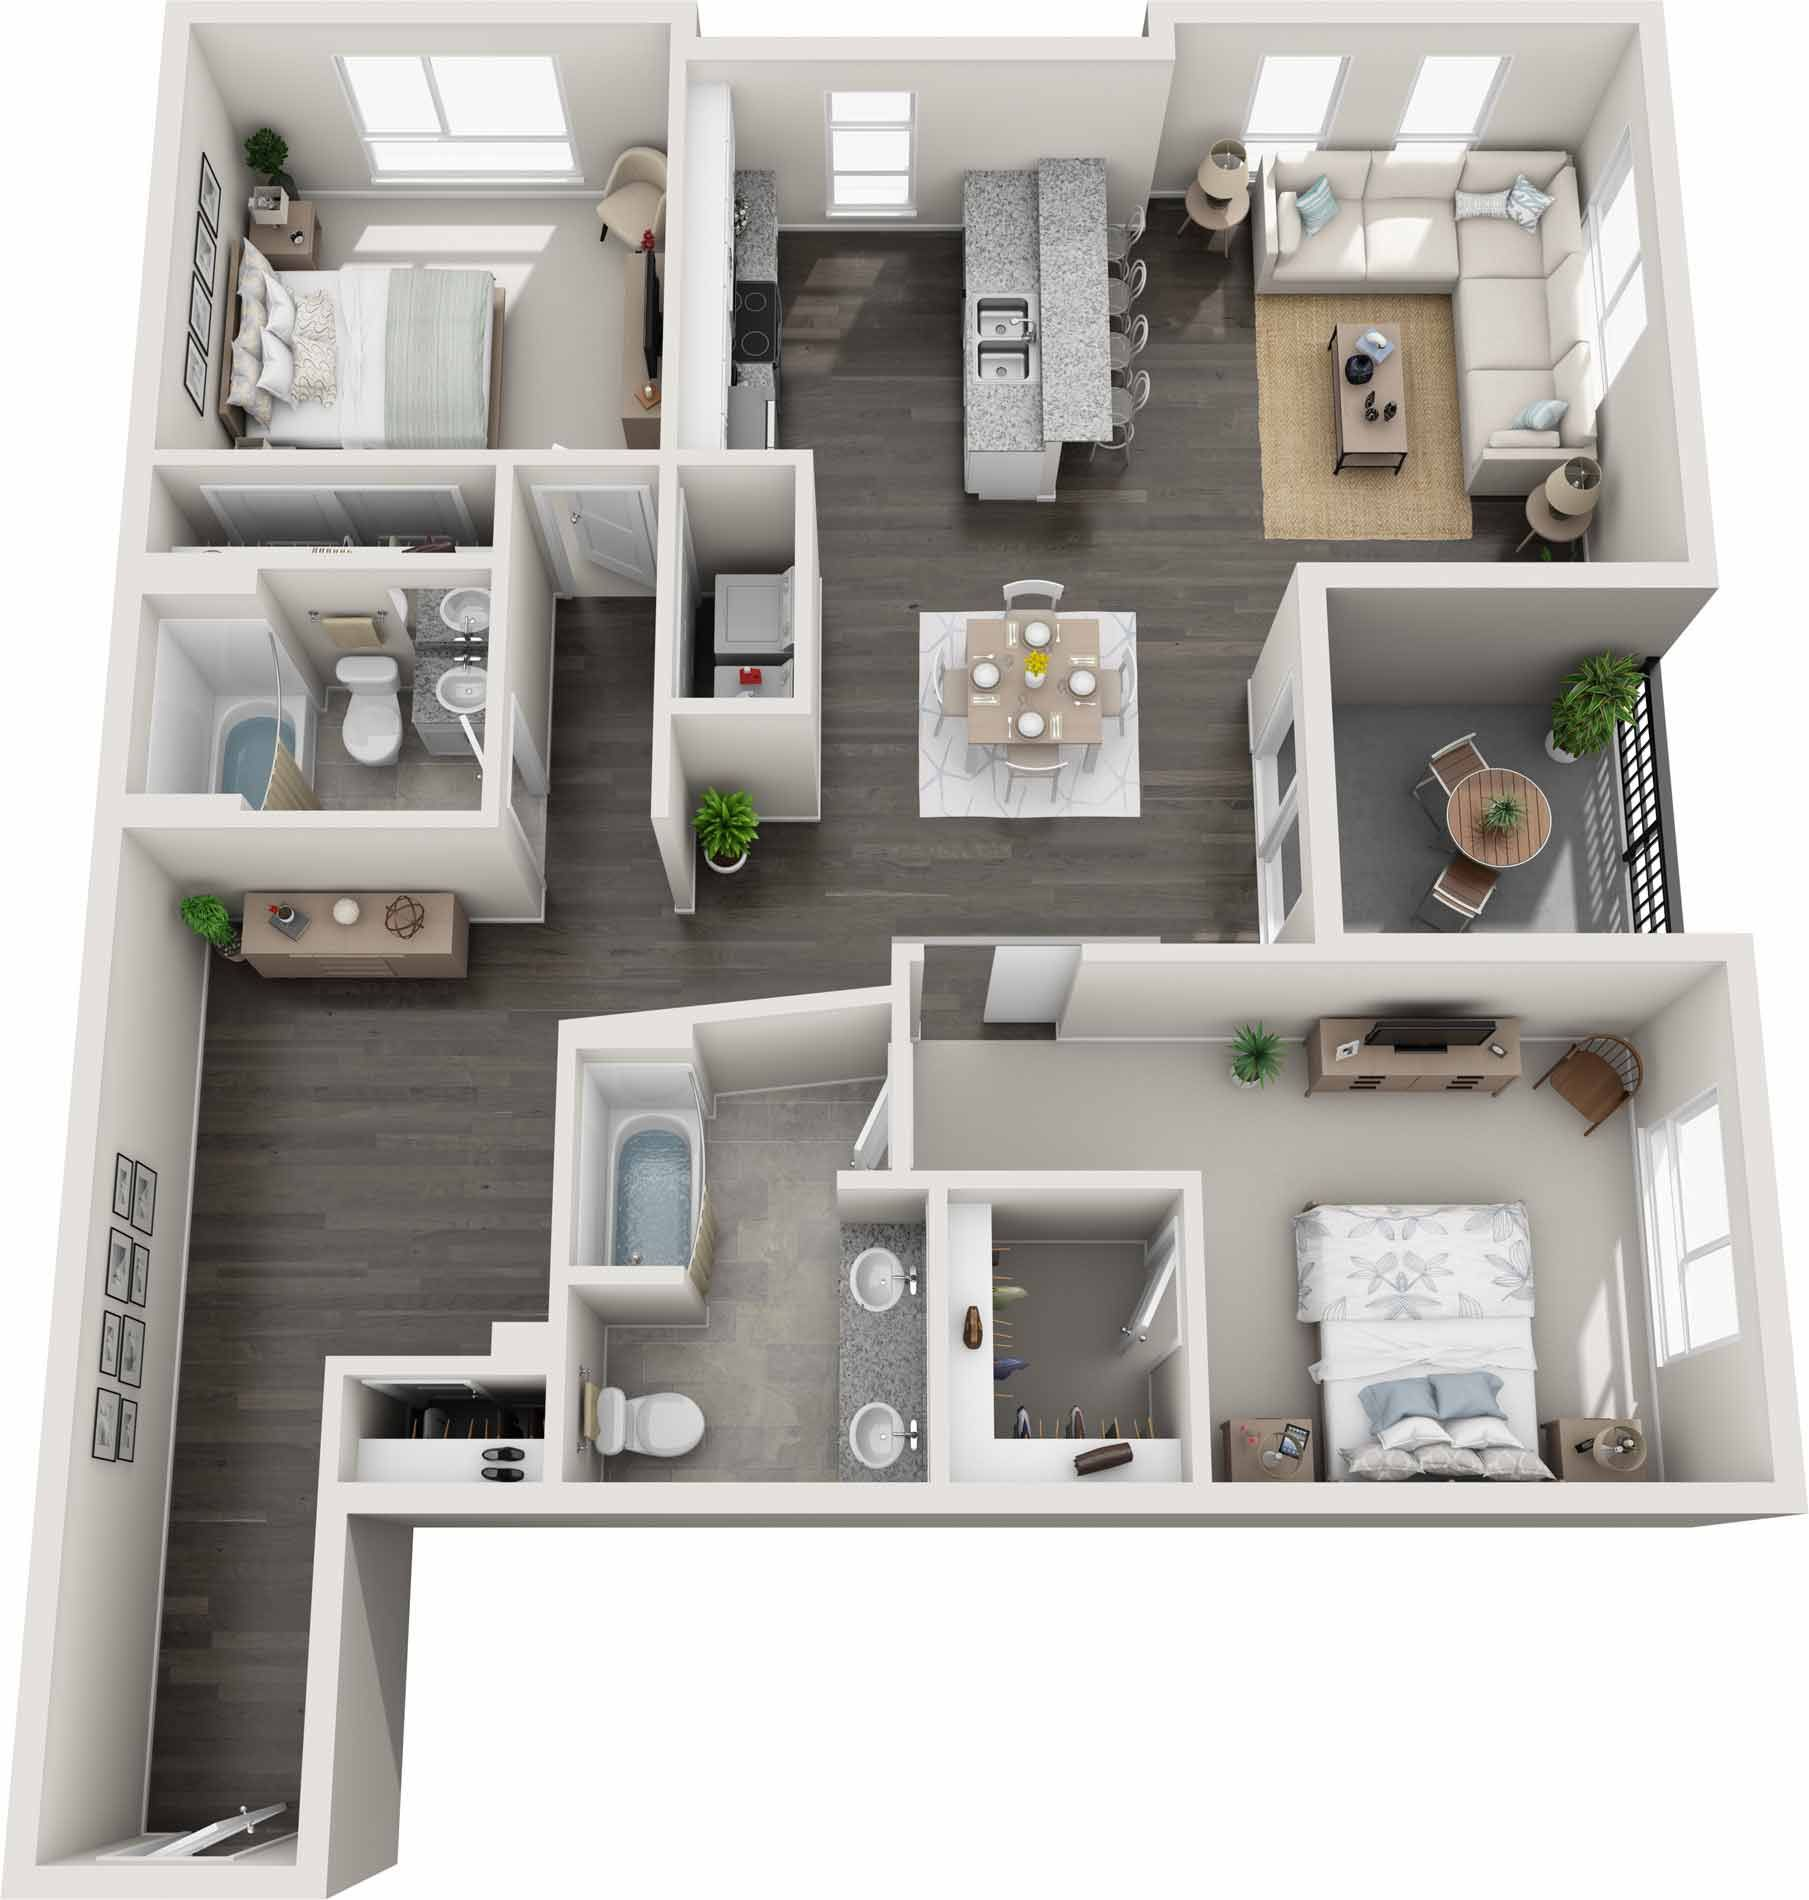 Obsessed This Is The Kind Of Space I Want In A Home House Layout Plans Sims House Plans House Plans